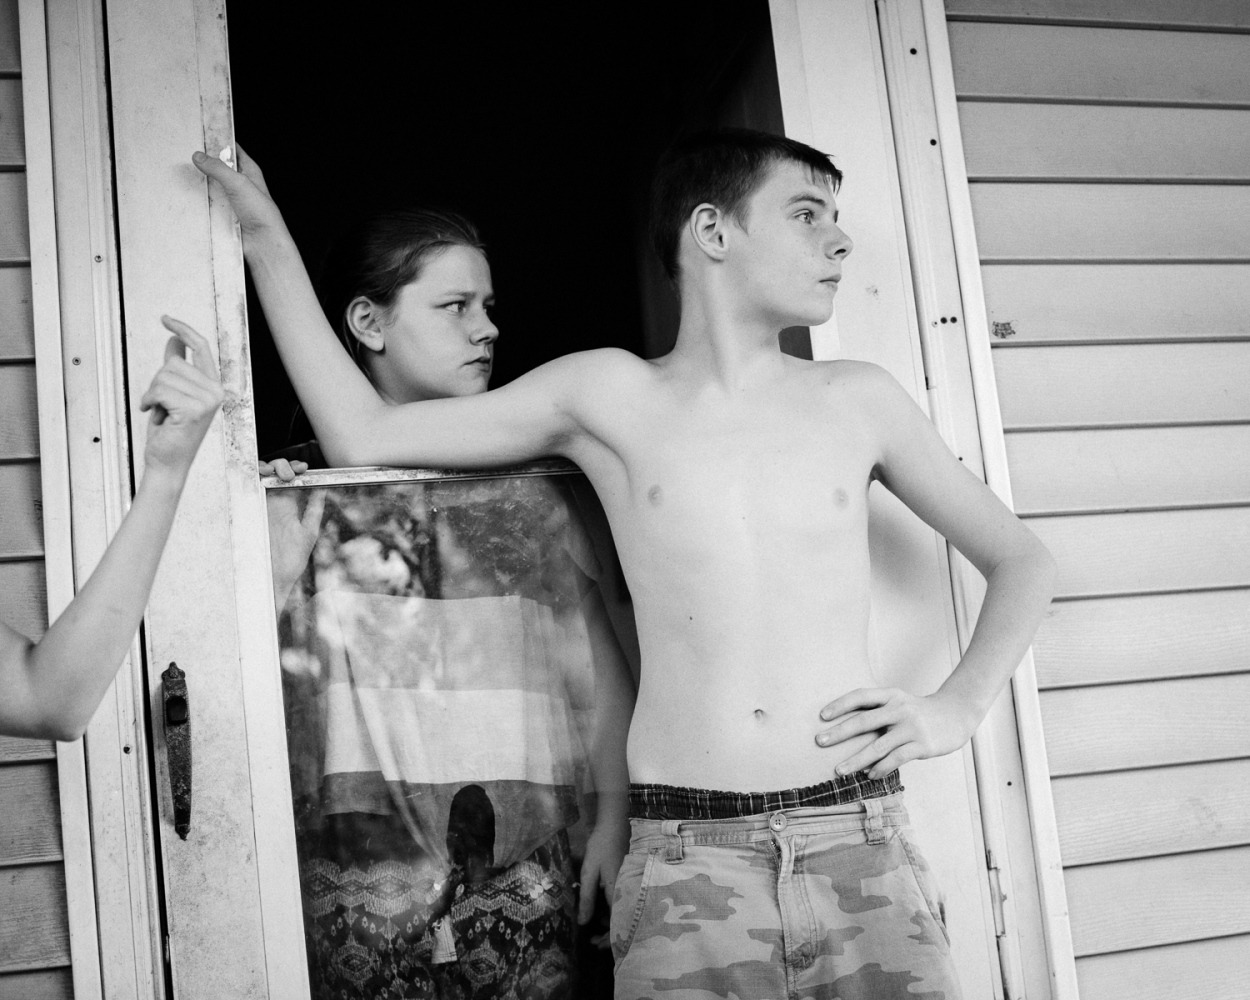 Kids watch from their front porch on Seventh Street in the East End neighborhood of Portsmouth. The East End has the city's highest crime rate. Many of its residents struggle with poverty and drug addiction.